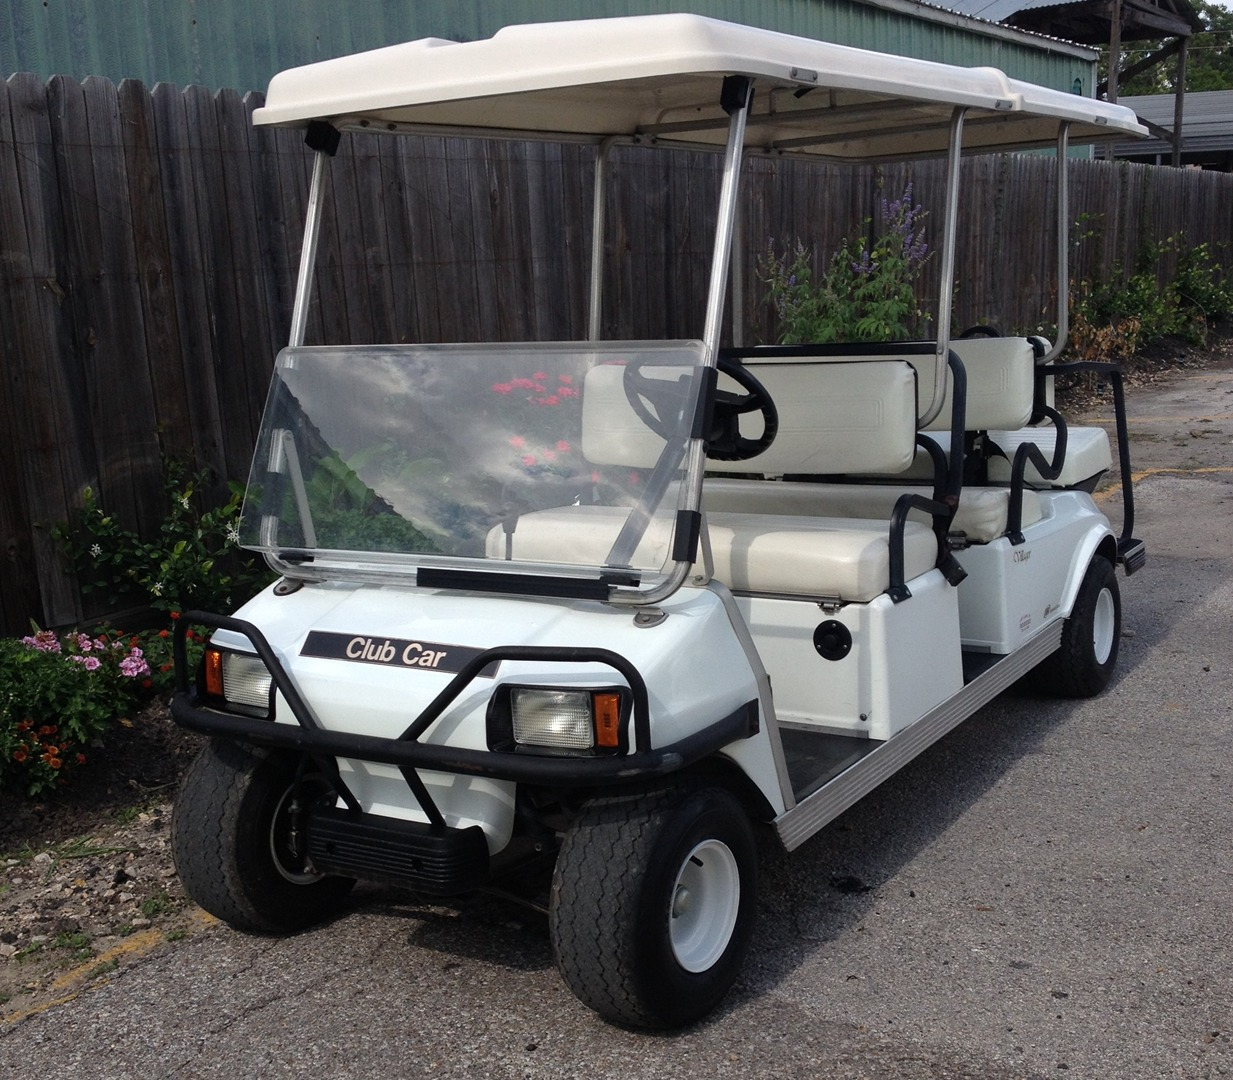 Lease Or Rental of Golf Cart Security Cart Utility Cart ... on supermarket houston tx, putt putt houston tx, attractions houston tx, black history houston tx, flowrider houston tx, mall houston tx, special olympics houston tx, high rise houston tx, glbt houston tx, botanical garden houston tx, orienteering houston tx, trophies houston tx, birds houston tx, hotels houston tx, luxury houses houston tx, scenic houston tx, nature houston tx, security patrol houston tx, rodeo houston tx,